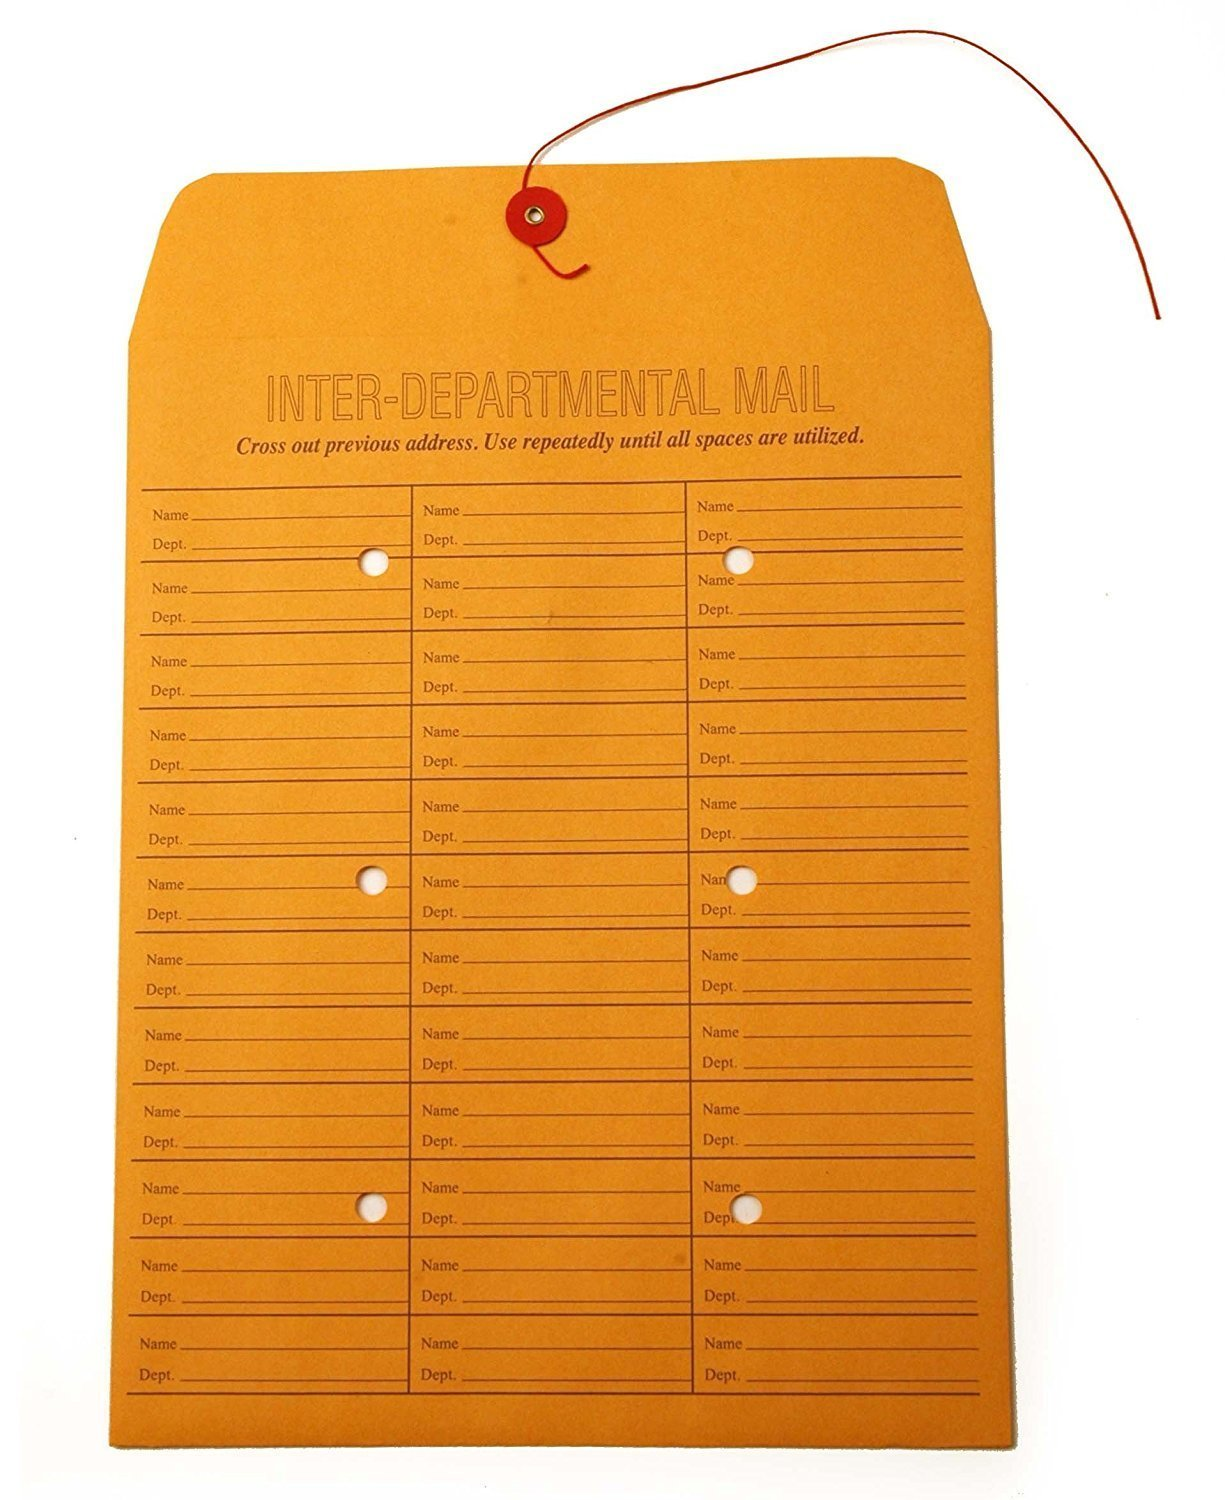 Quality String-Tie Jumbo Size Inter-Department Envelopes, 12 x 16 Inches, 100 per Pack, Printed Both Sides - 71 Entries by Xertas